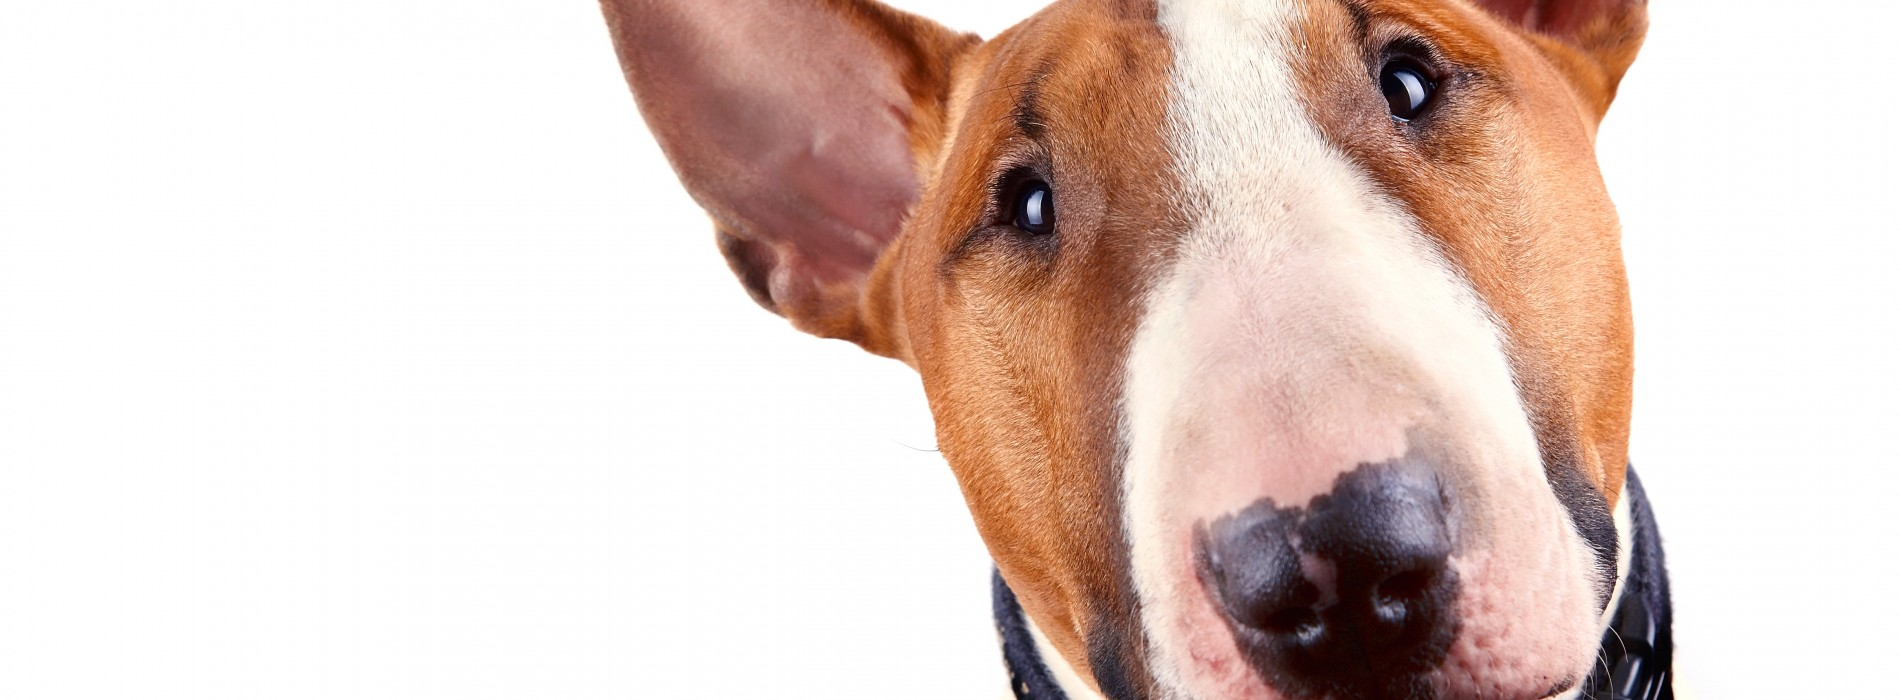 What you need to consider before fighting over Fido